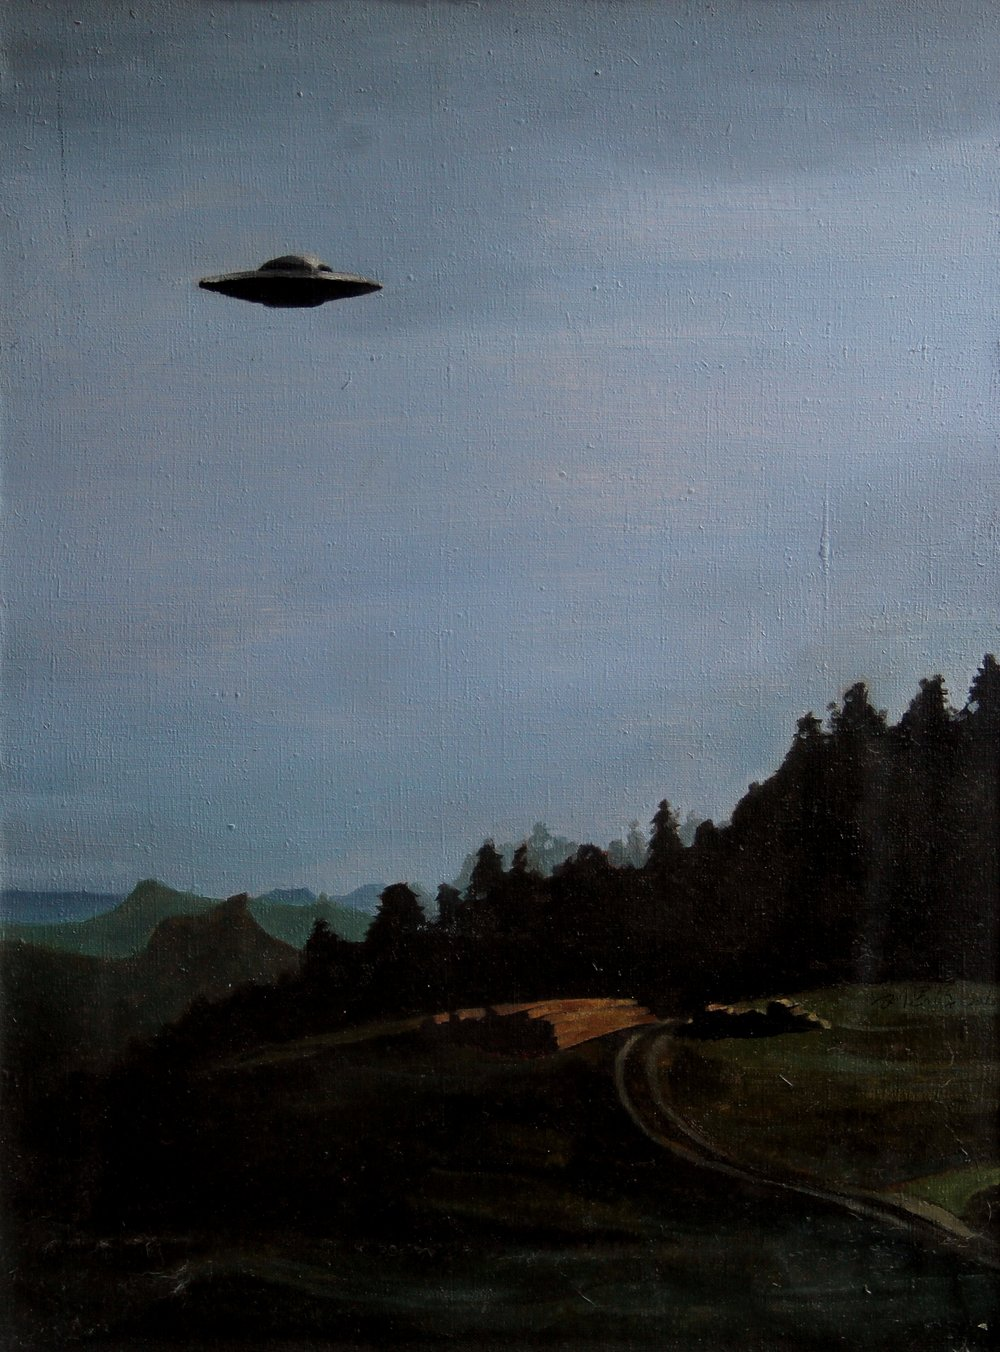 Unidentified Flying Object,2010, 40cm x 30cm, Oil on canvas.jpg